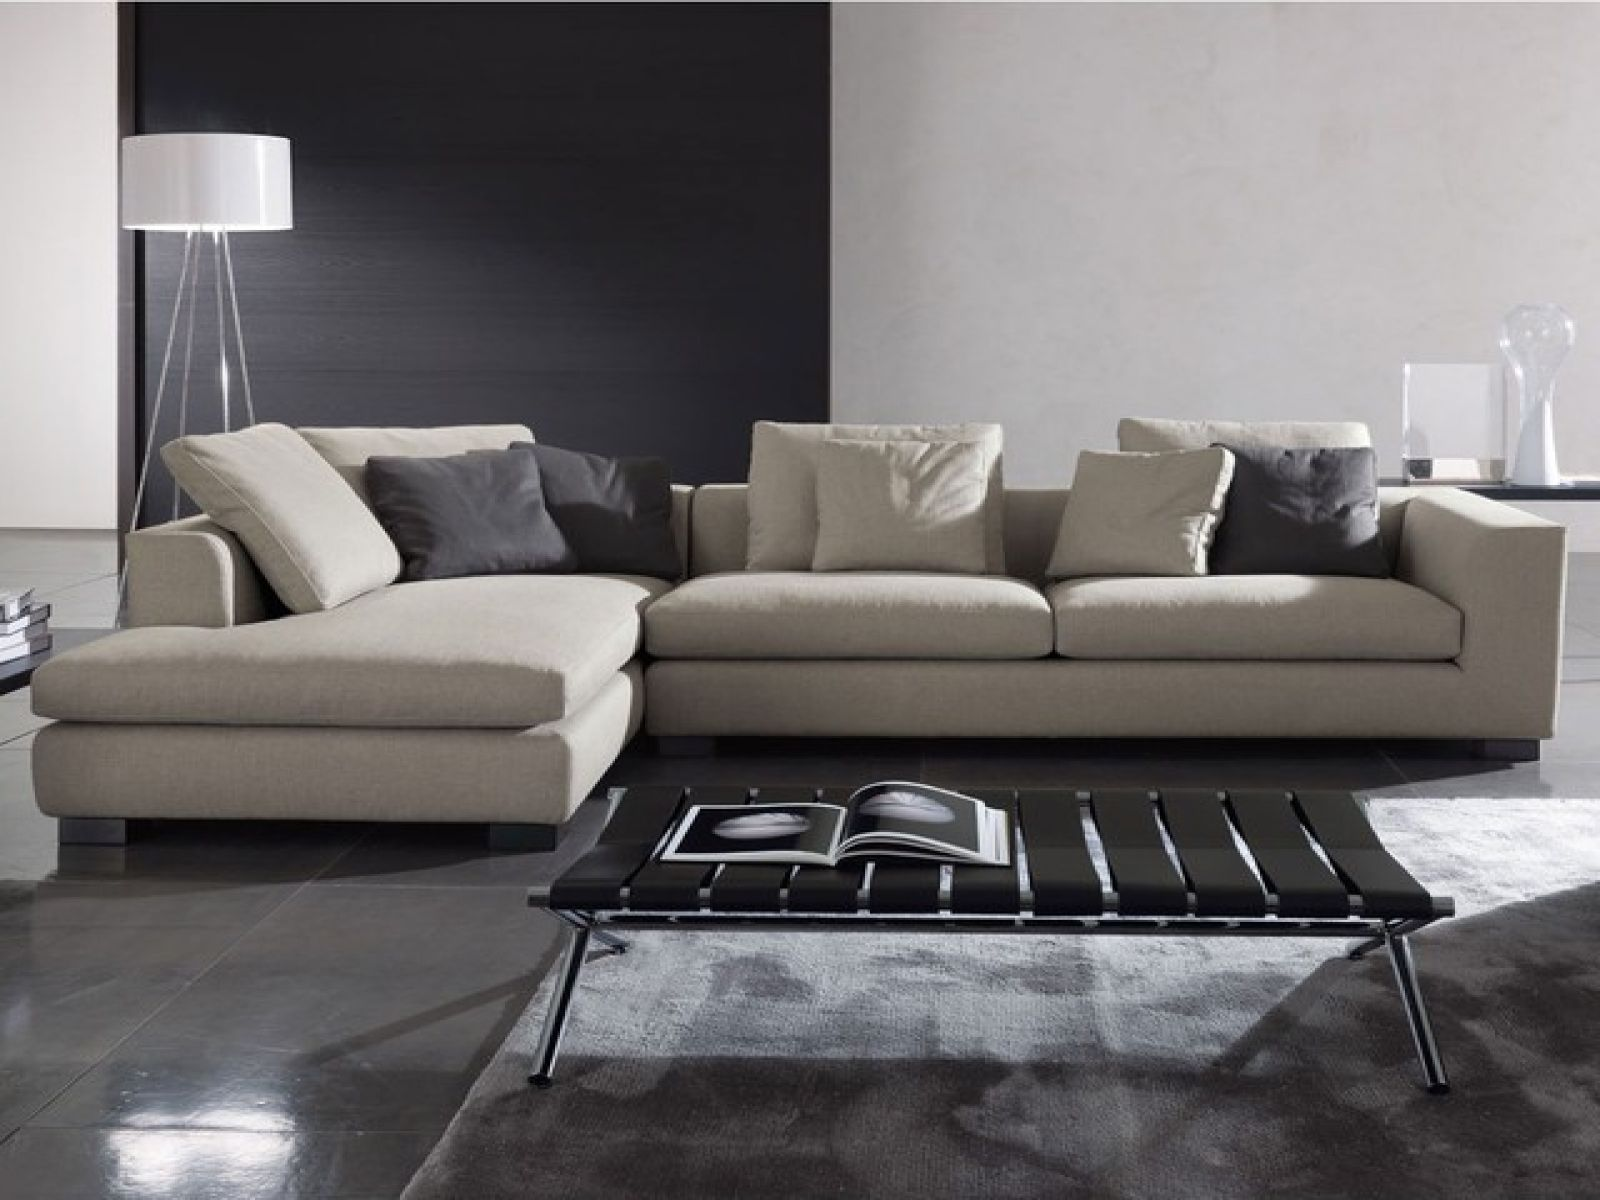 Minimalist Sectional Sofa Google Search Sectional Sofa Modern Sofa Sectional Comfortable Modern Sofa